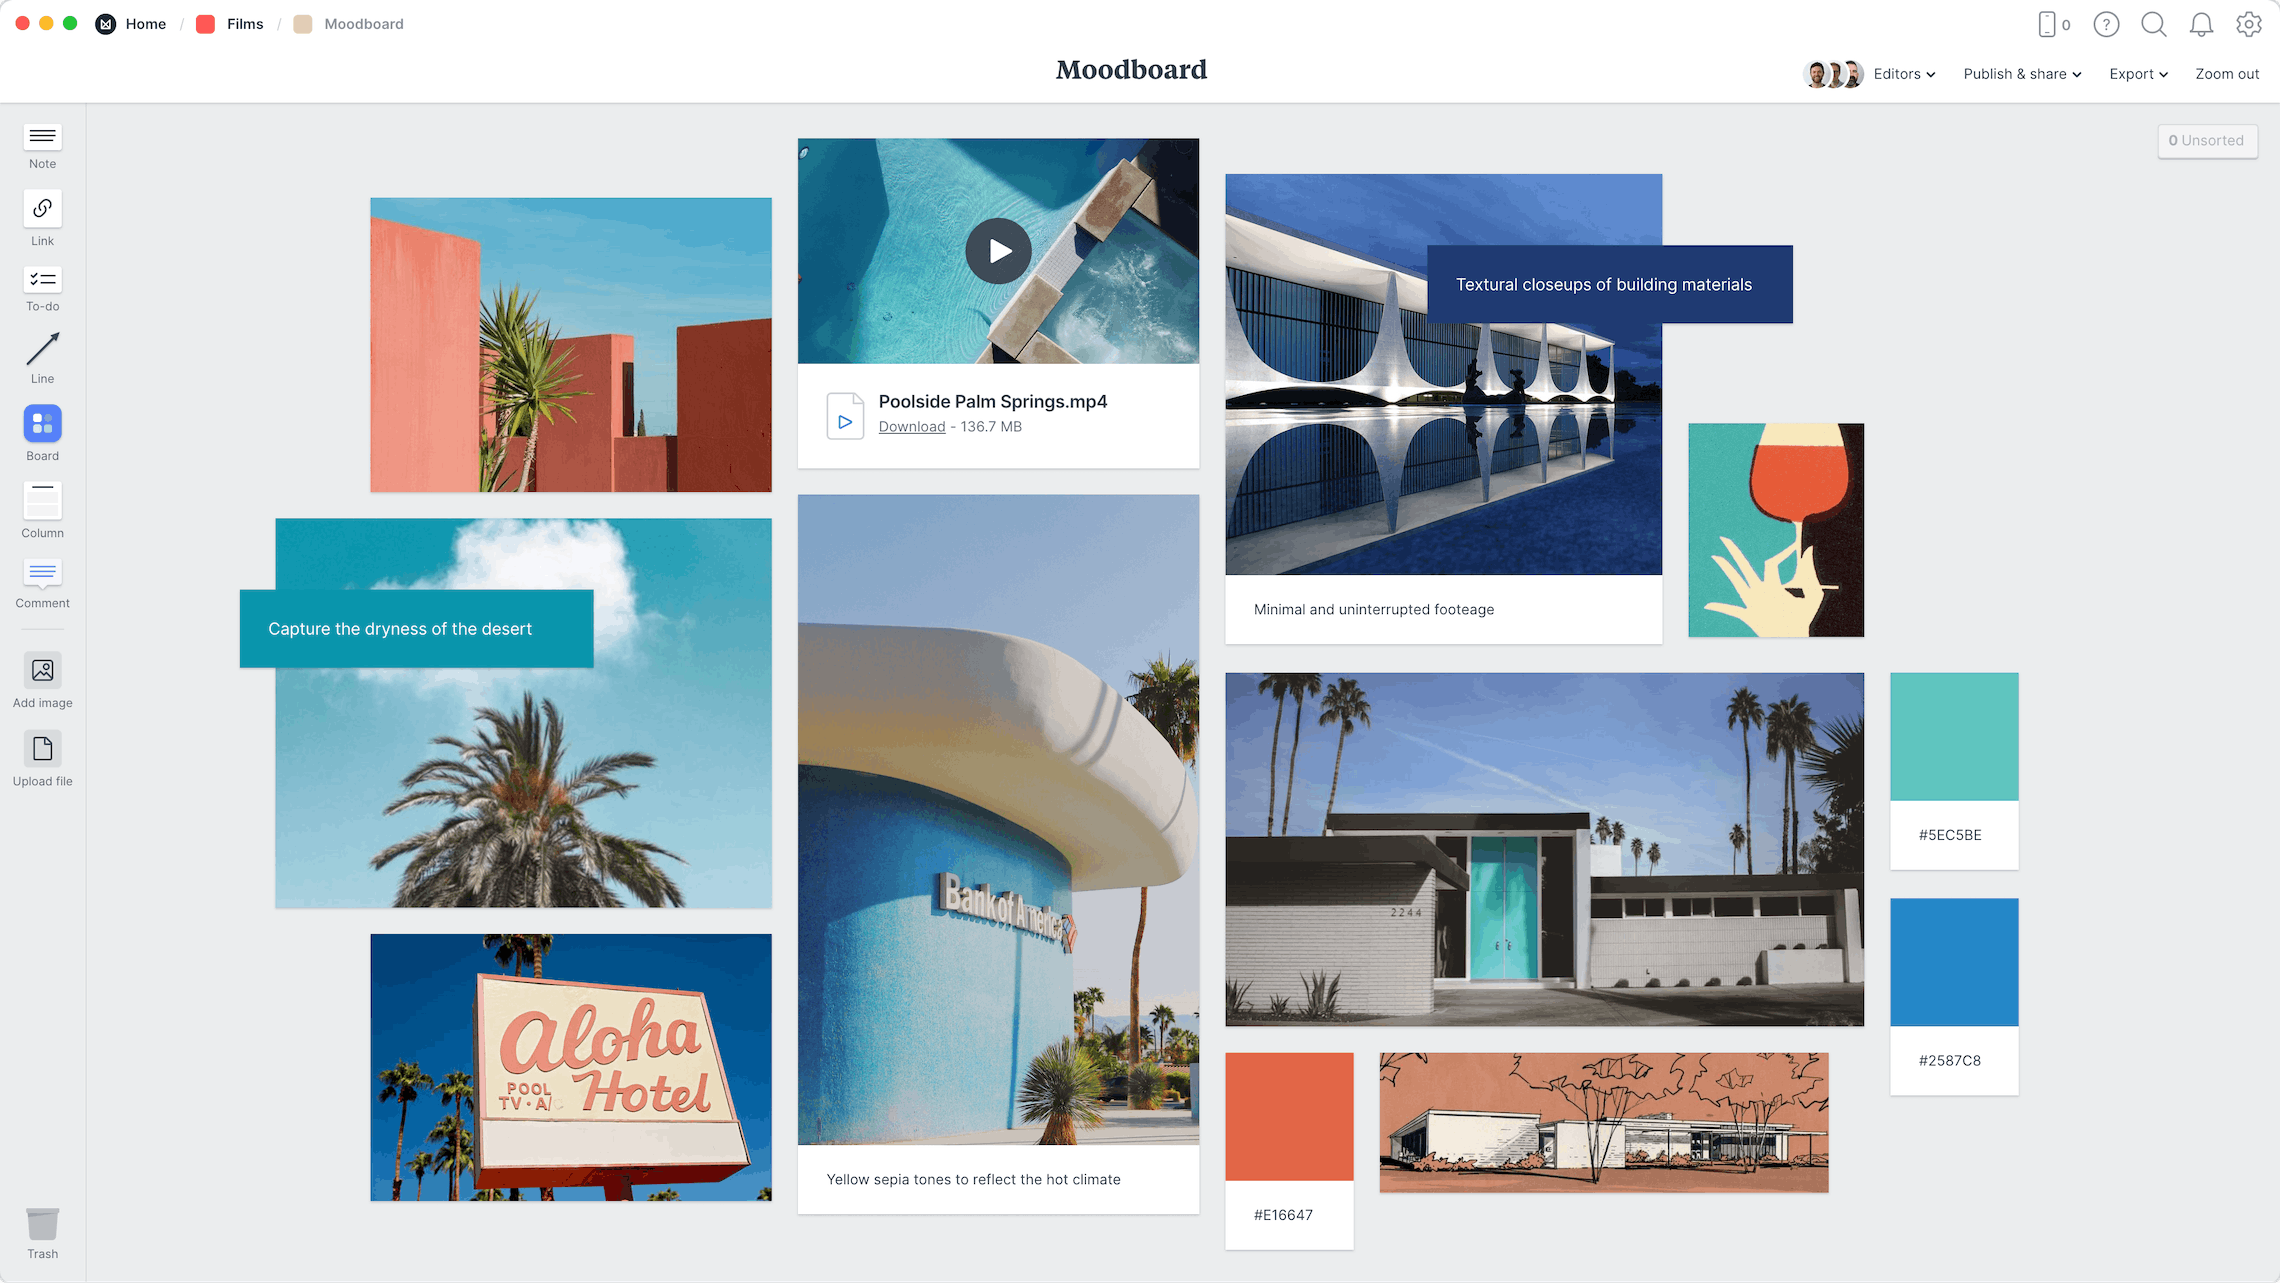 Film Moodboard Template, within the Milanote app